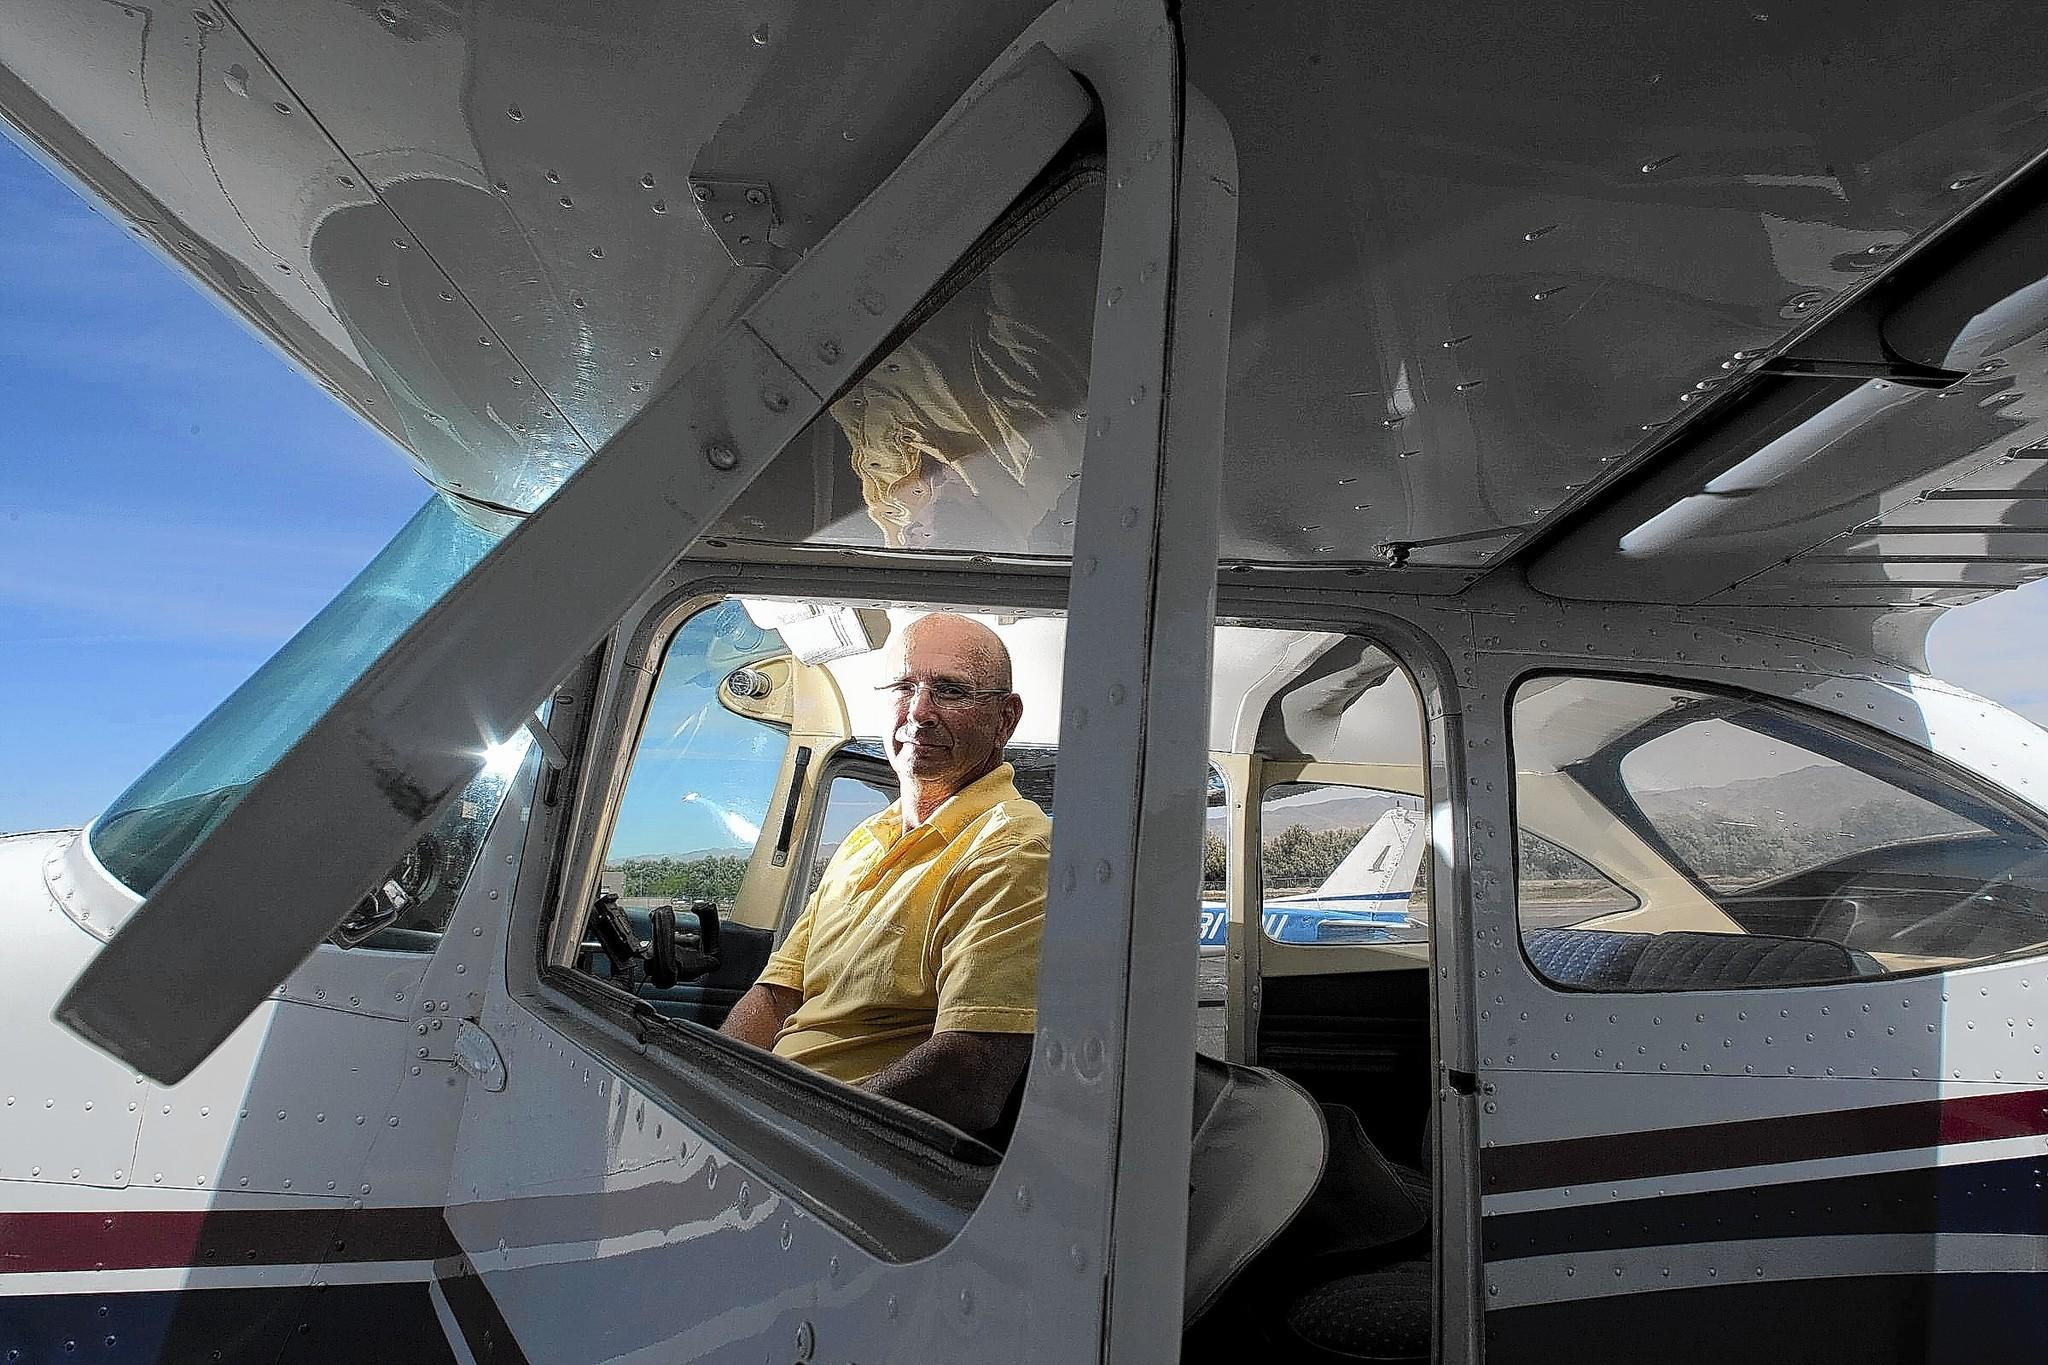 Ken Dobson, a retired police officer, sits in his single-engine Cessna at Bermuda Dunes Airport in California. He was detained and his plane searched by federal agents -- without legal justification -- after he landed at a small airport in Detroit. Instead of uncovering a drug cache, the officials found luggage, golf clubs and an empty Thermos.